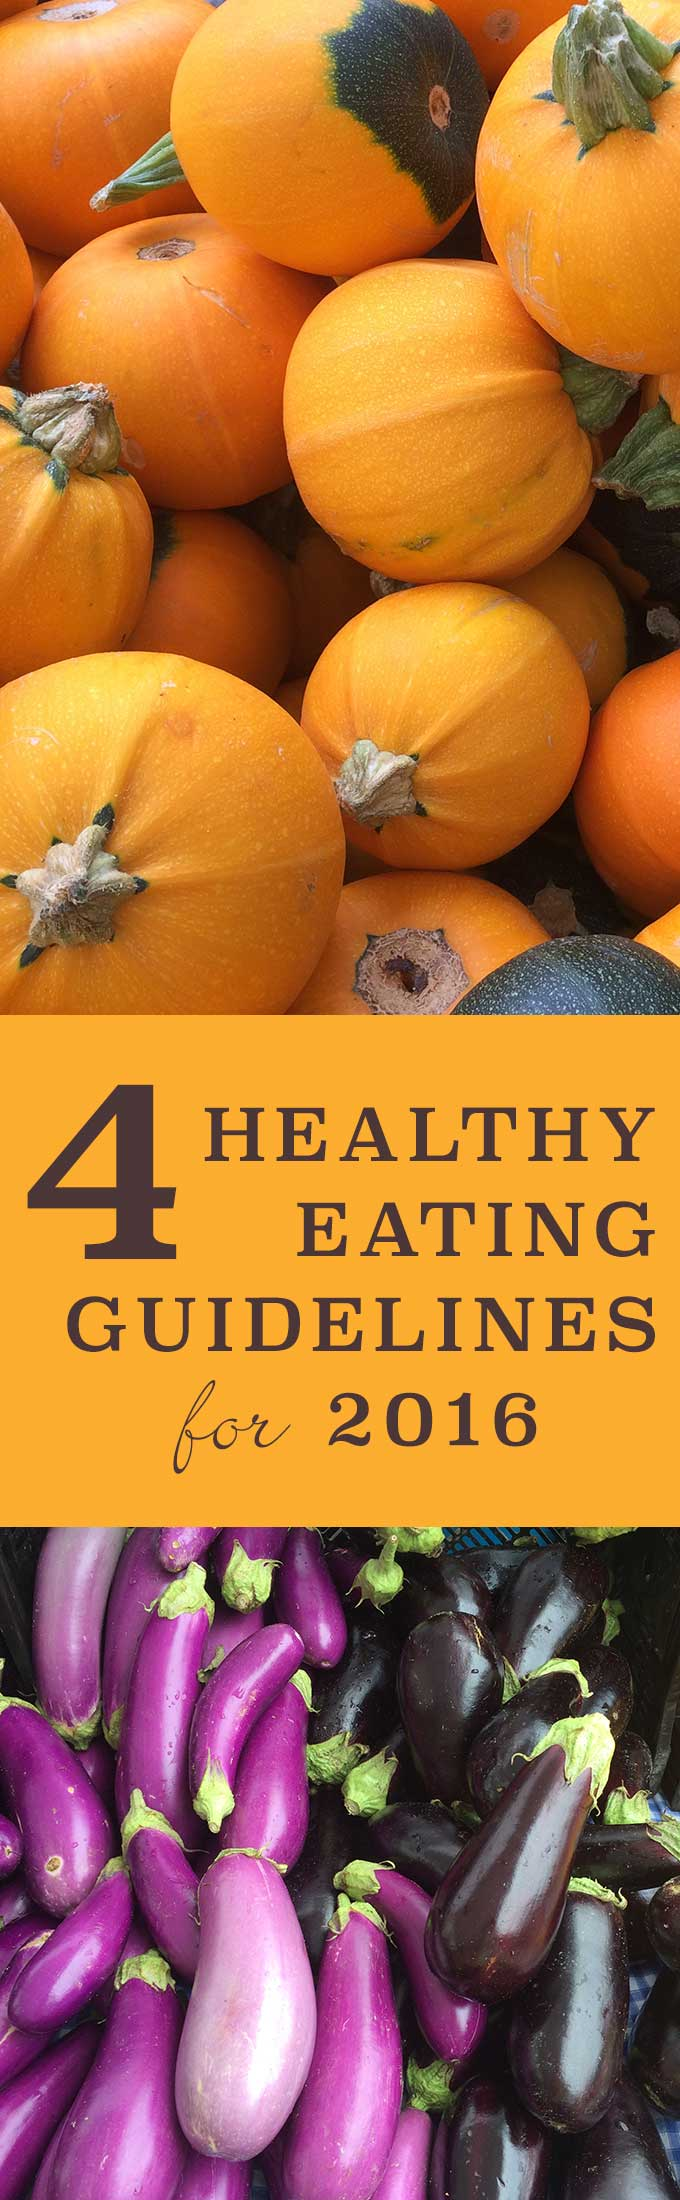 4 Healthy Eating Guidelines for 2016